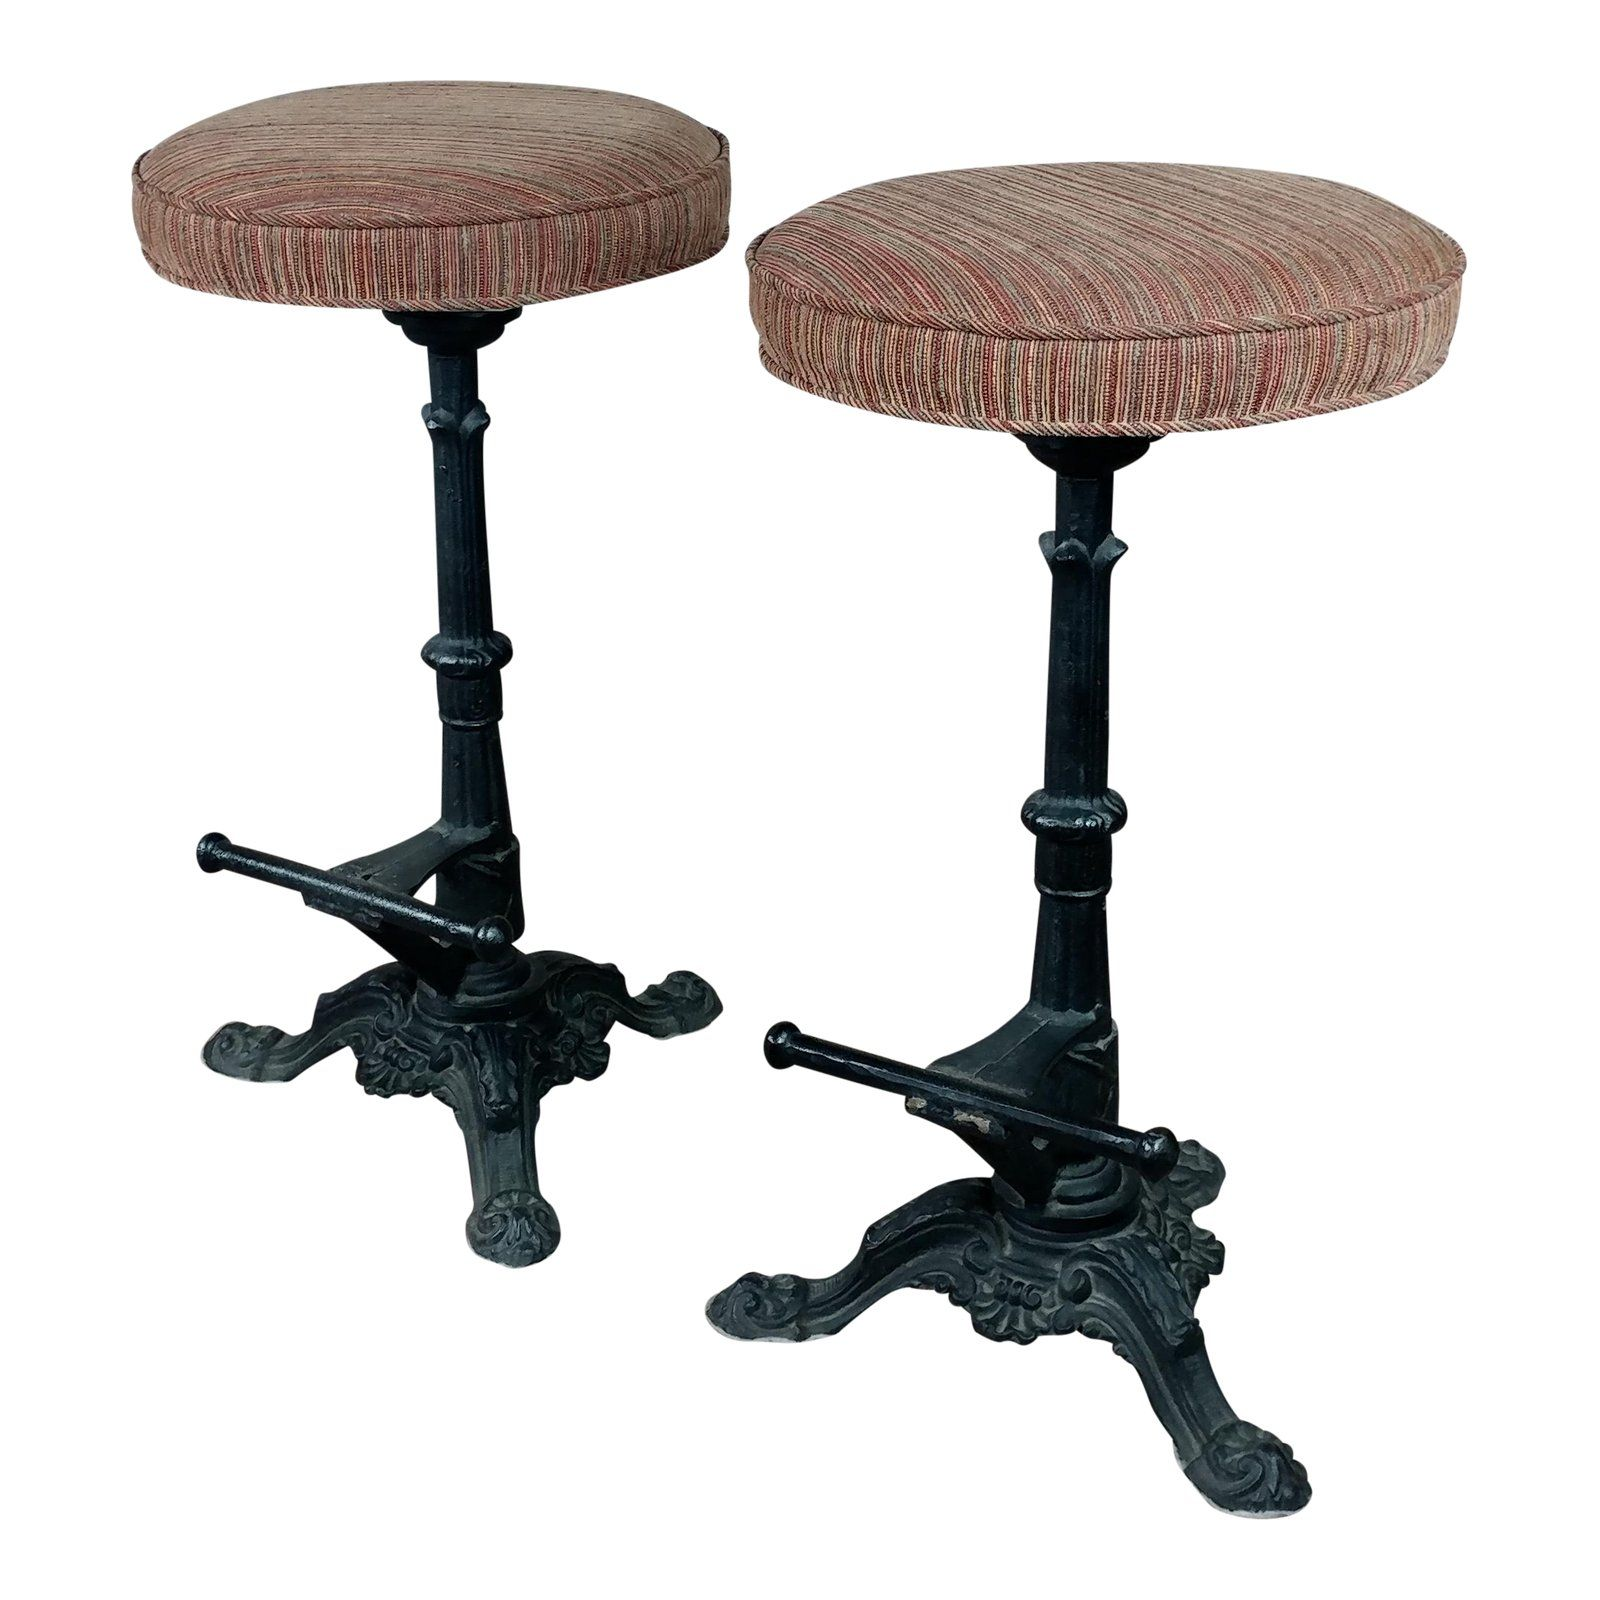 Beautiful Victorian Cast Iron Bar Stools Circa 1890s A Pair Upholstered Rotating Round Seats Size 17 X 17 X 30 Iron Bar Stools Bar Stools Stool